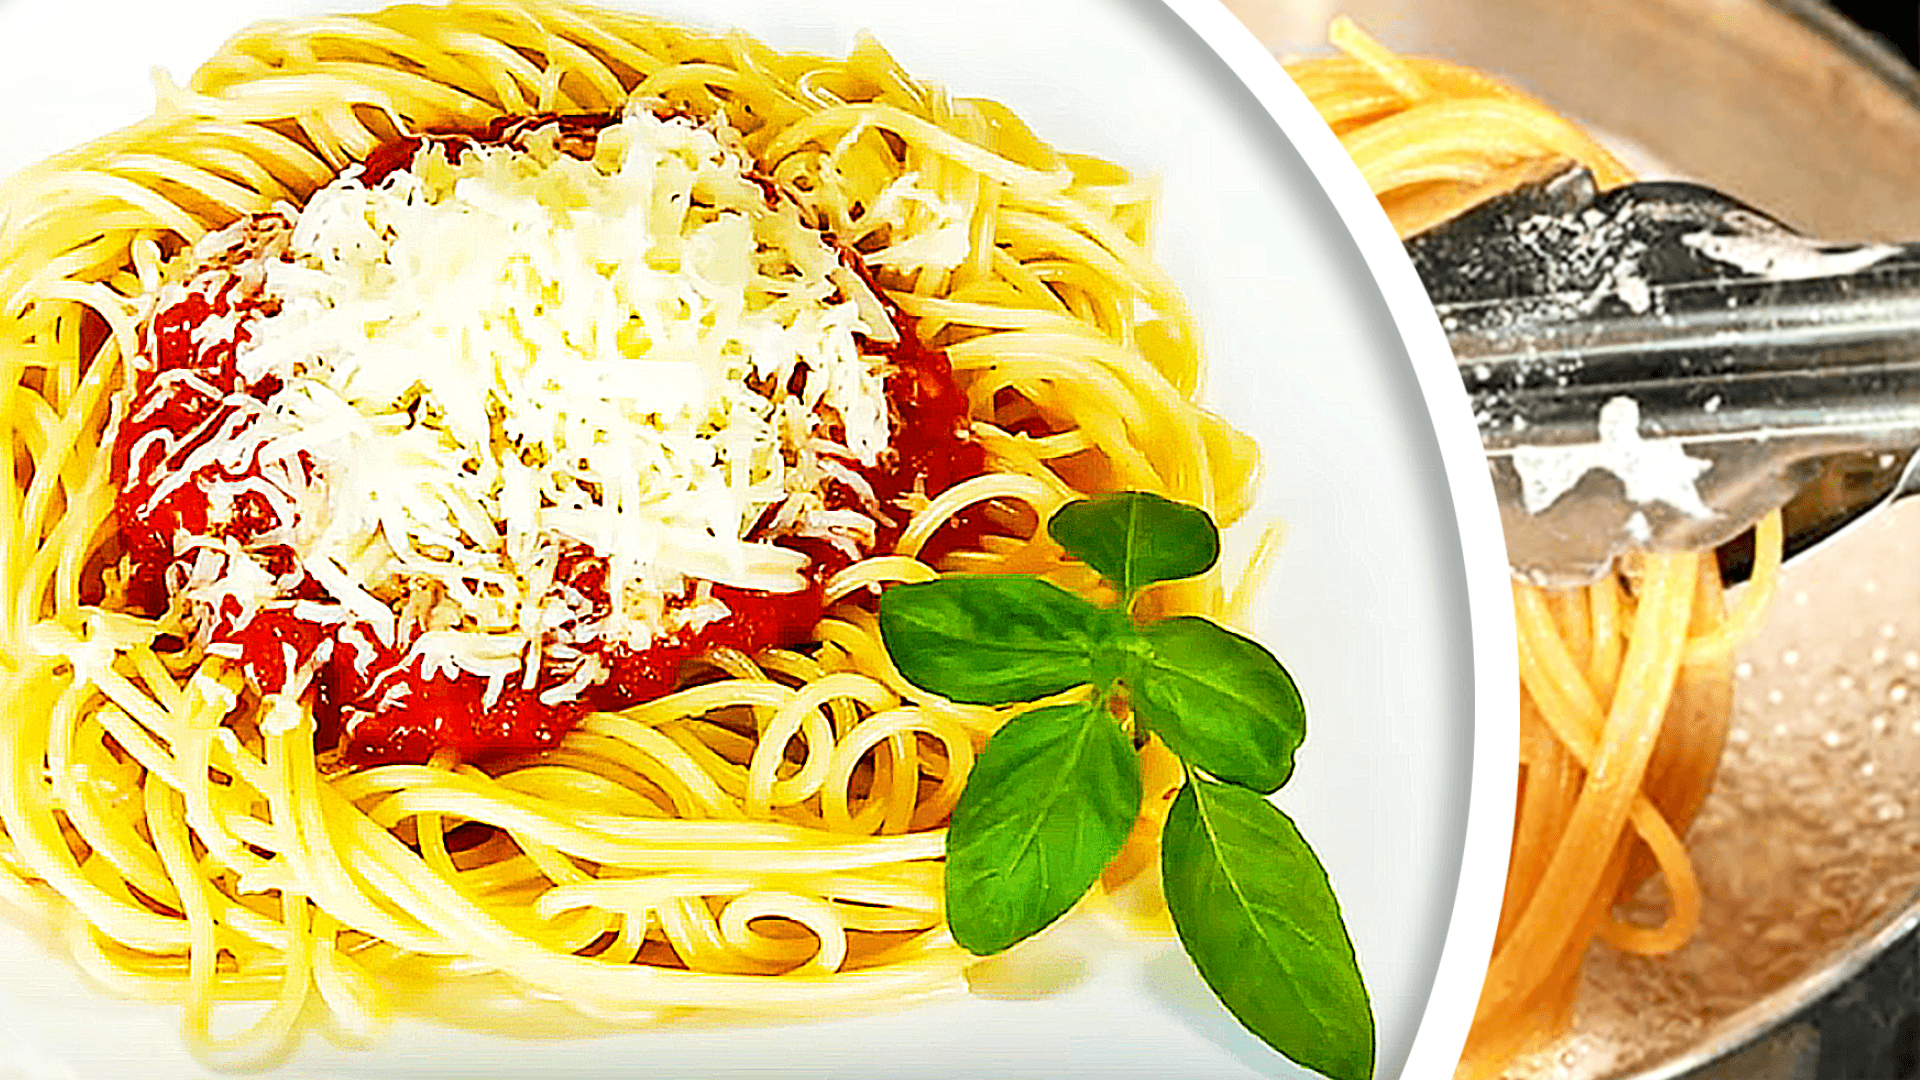 Simple Spaghetti With Tomato Sauce Homemade Pasta Sauce Recipe In 9 Steps